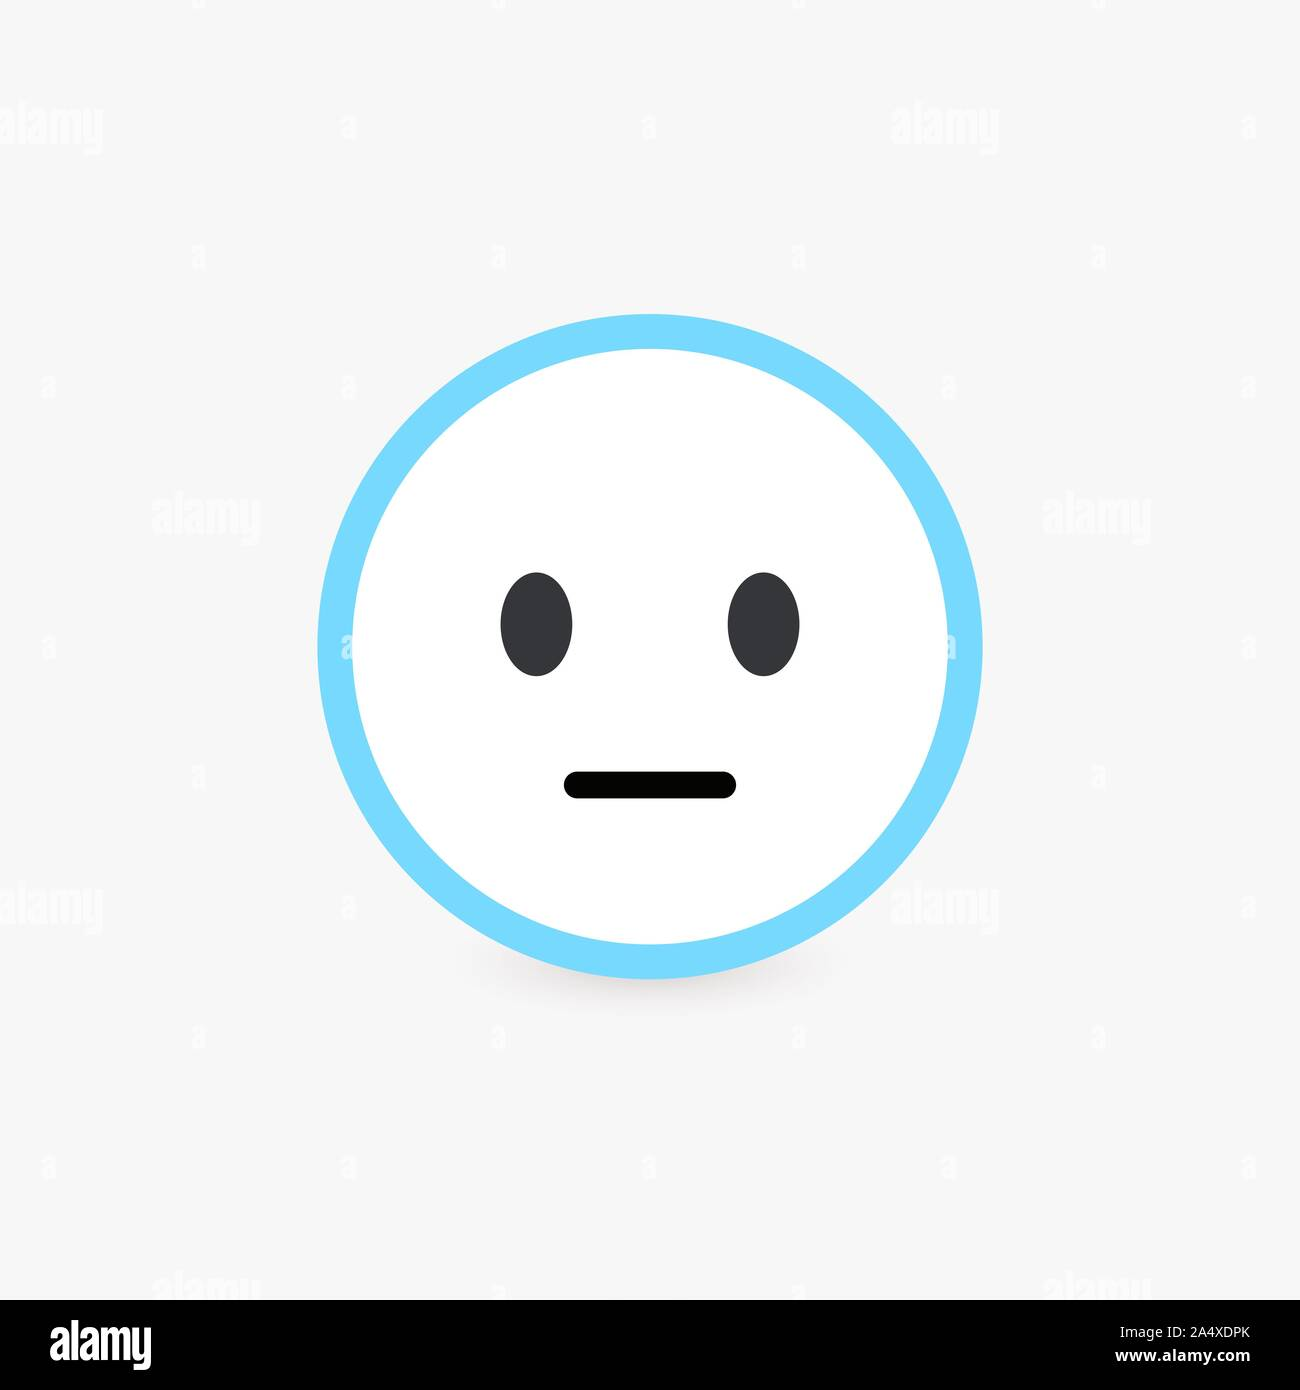 Neutral Face Normal Customer Review And Emotional Assessment Of Goods Or Services Quality Poker Face Icon With Bright Blue Contour Flat Emoticon Stock Vector Image Art Alamy